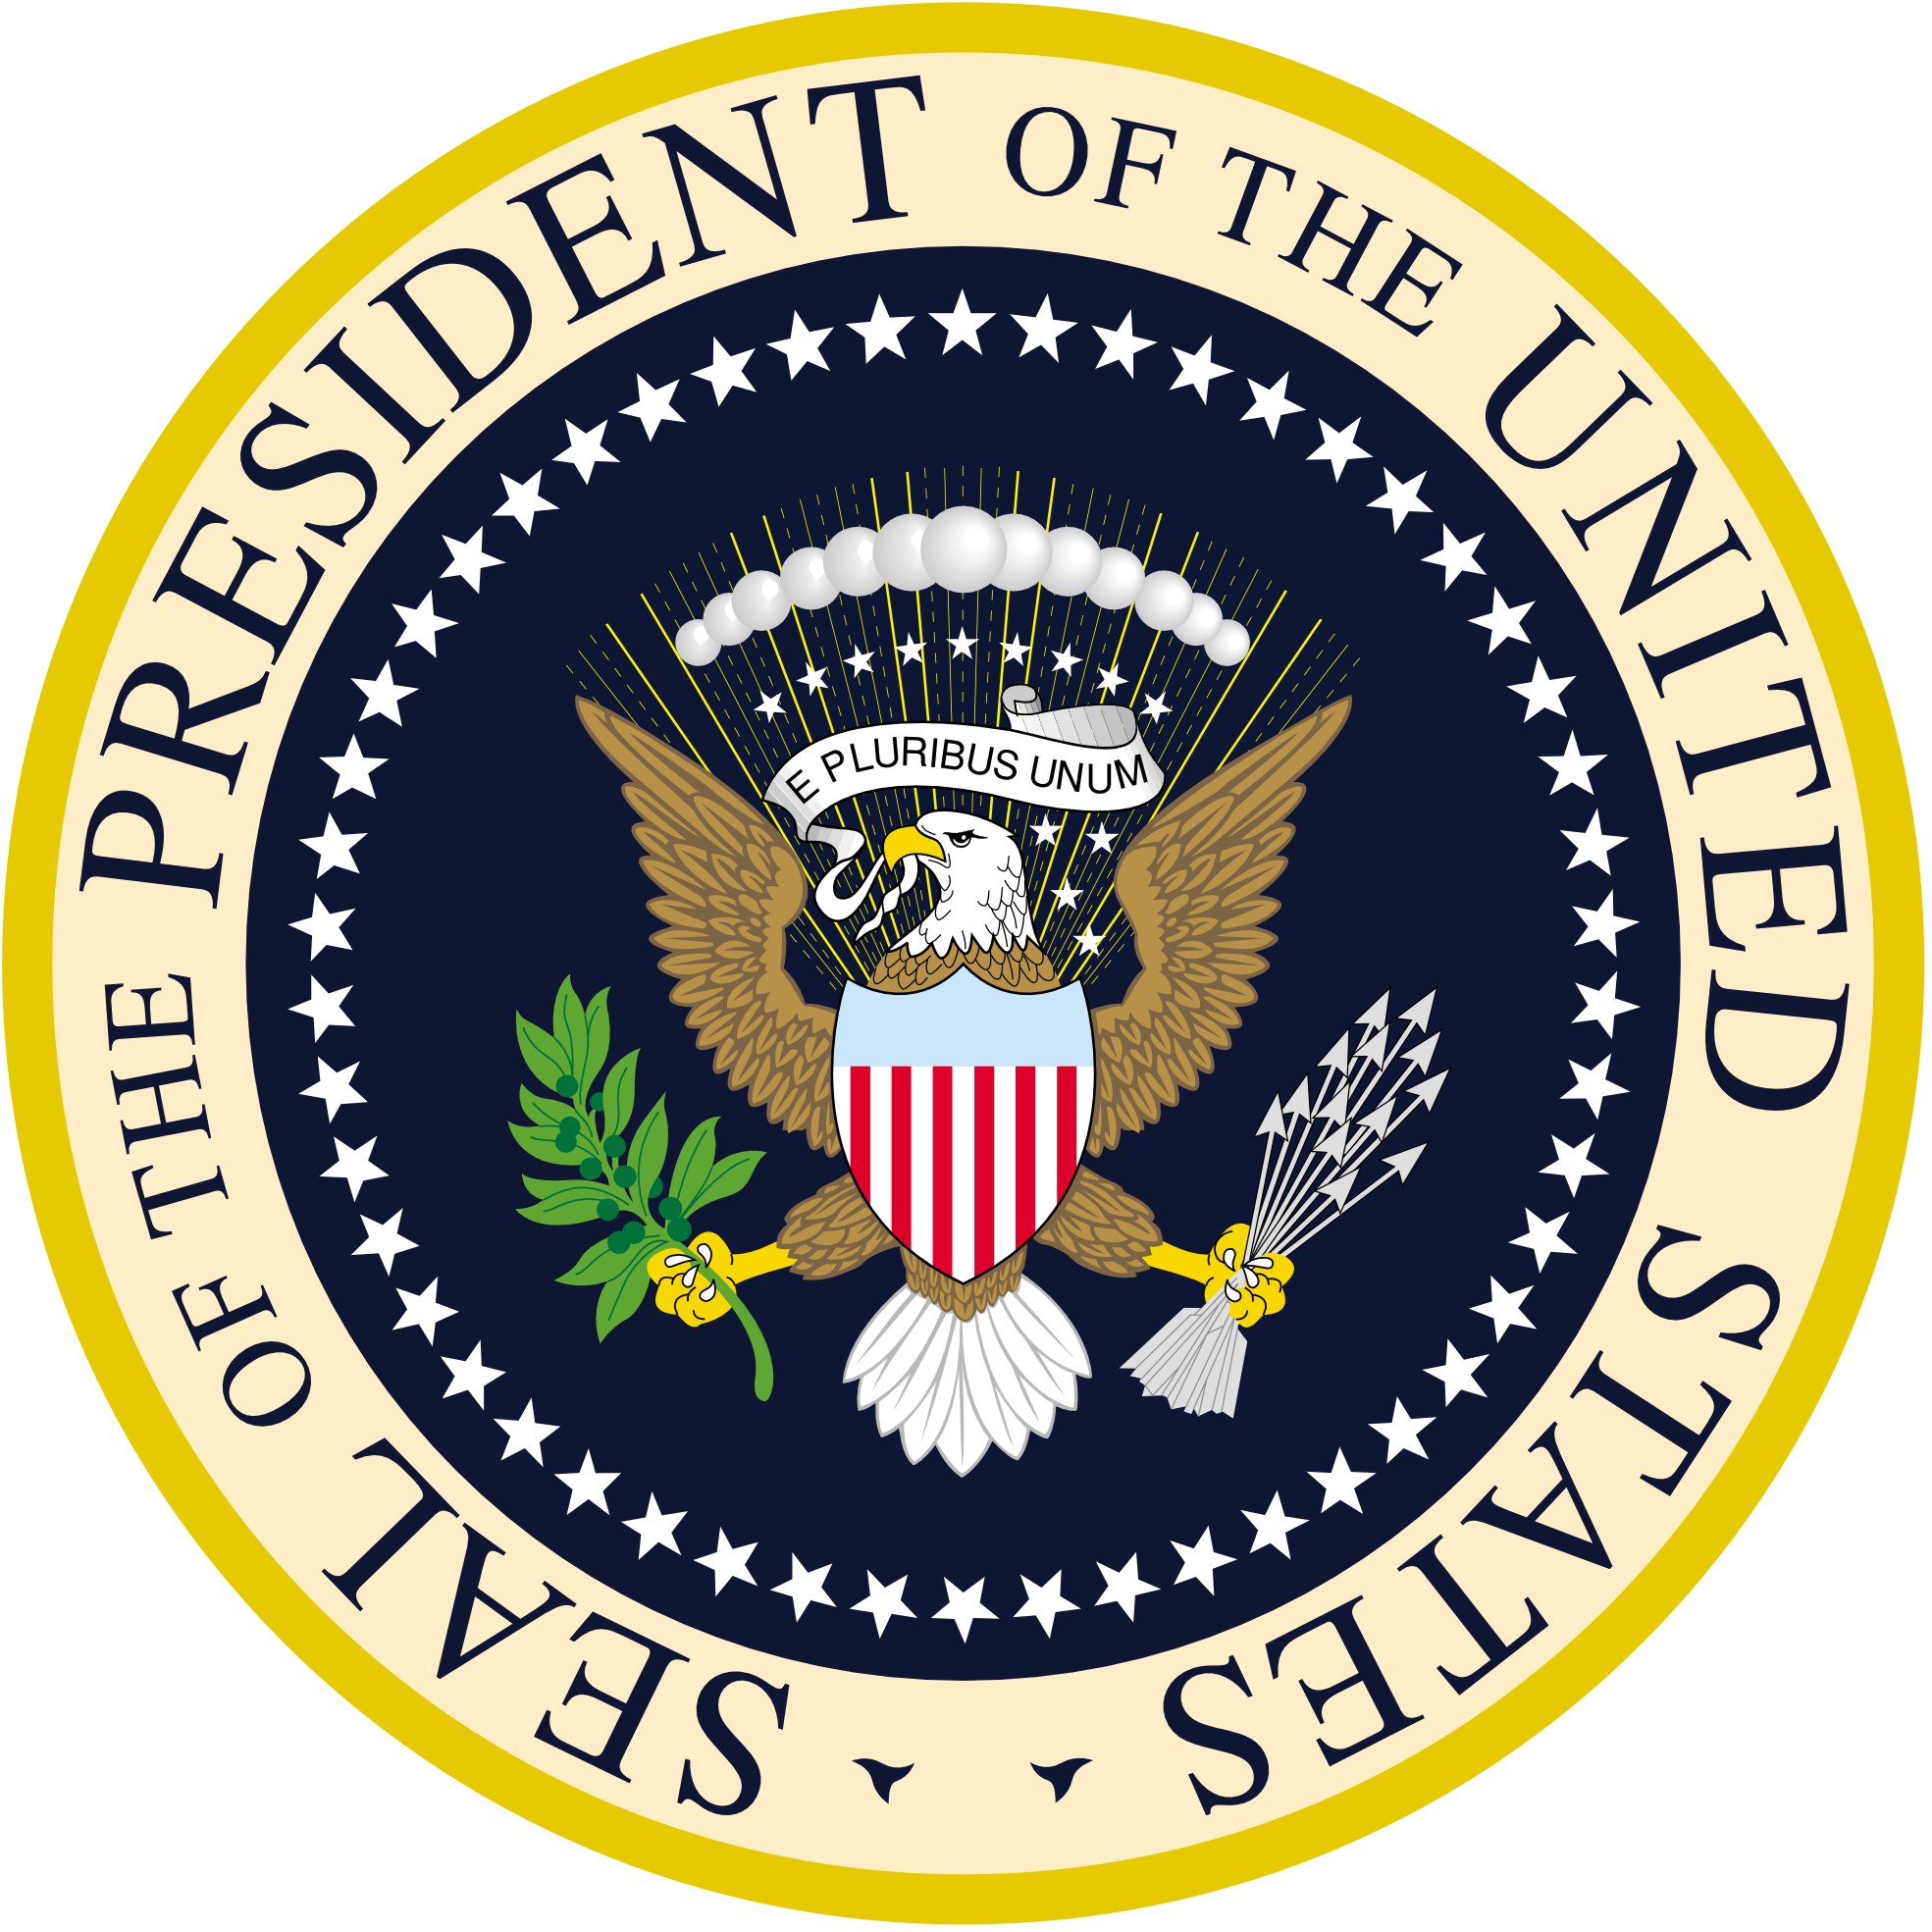 Seal clipart weddell seal. President of the united